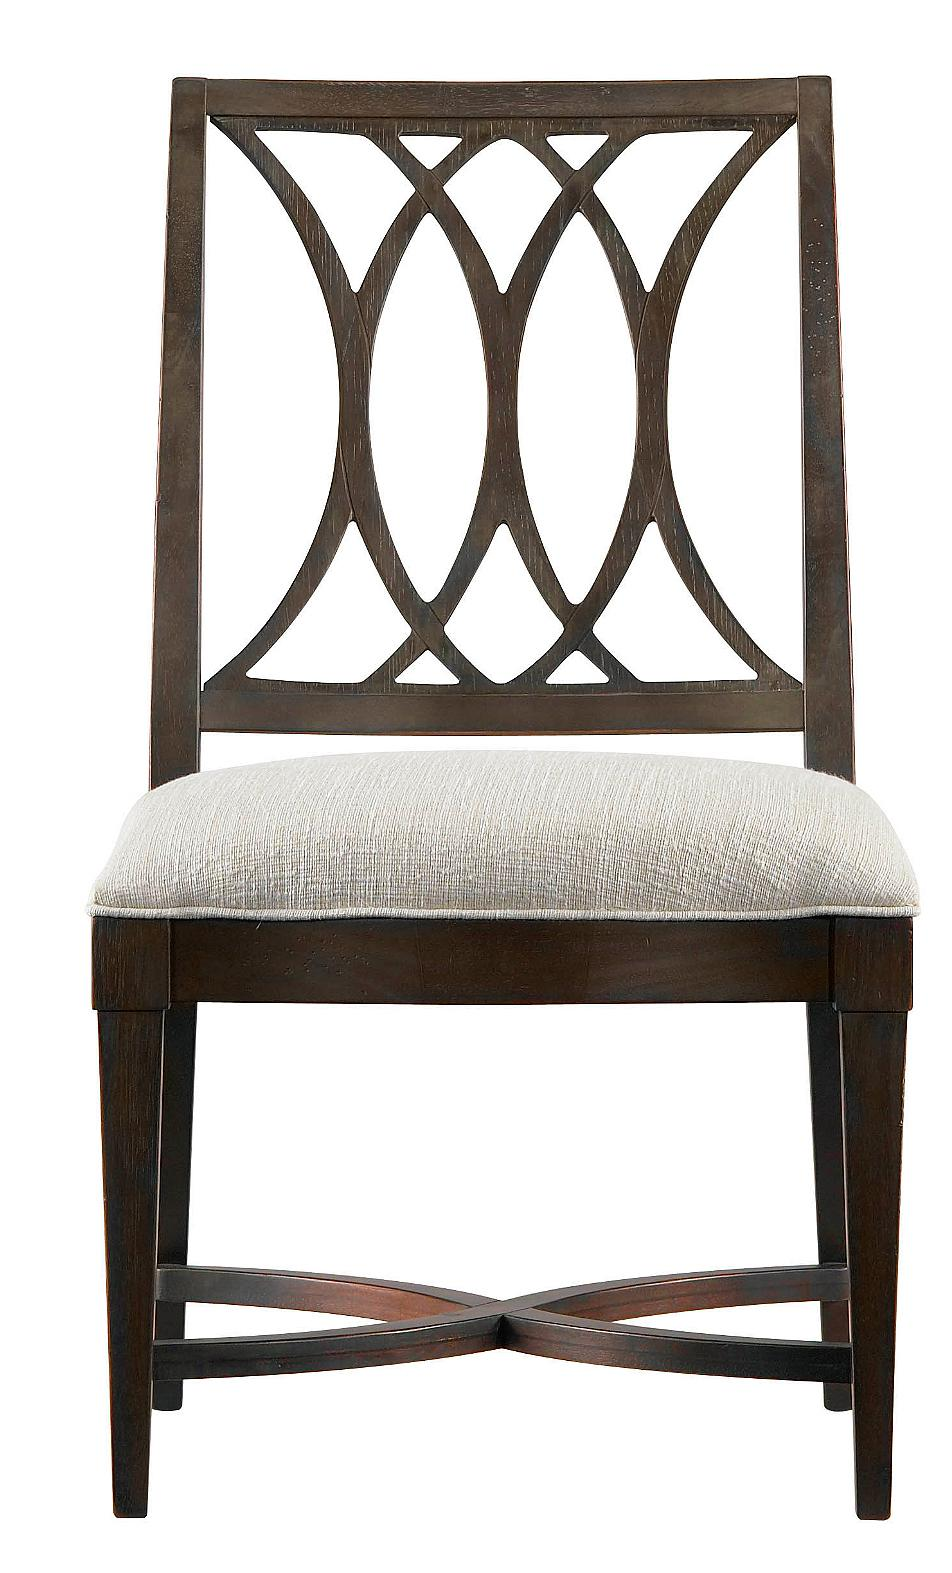 Stanley Furniture Coastal Living Resort Heritage Coast Side Chair - Item Number: 062-11-60